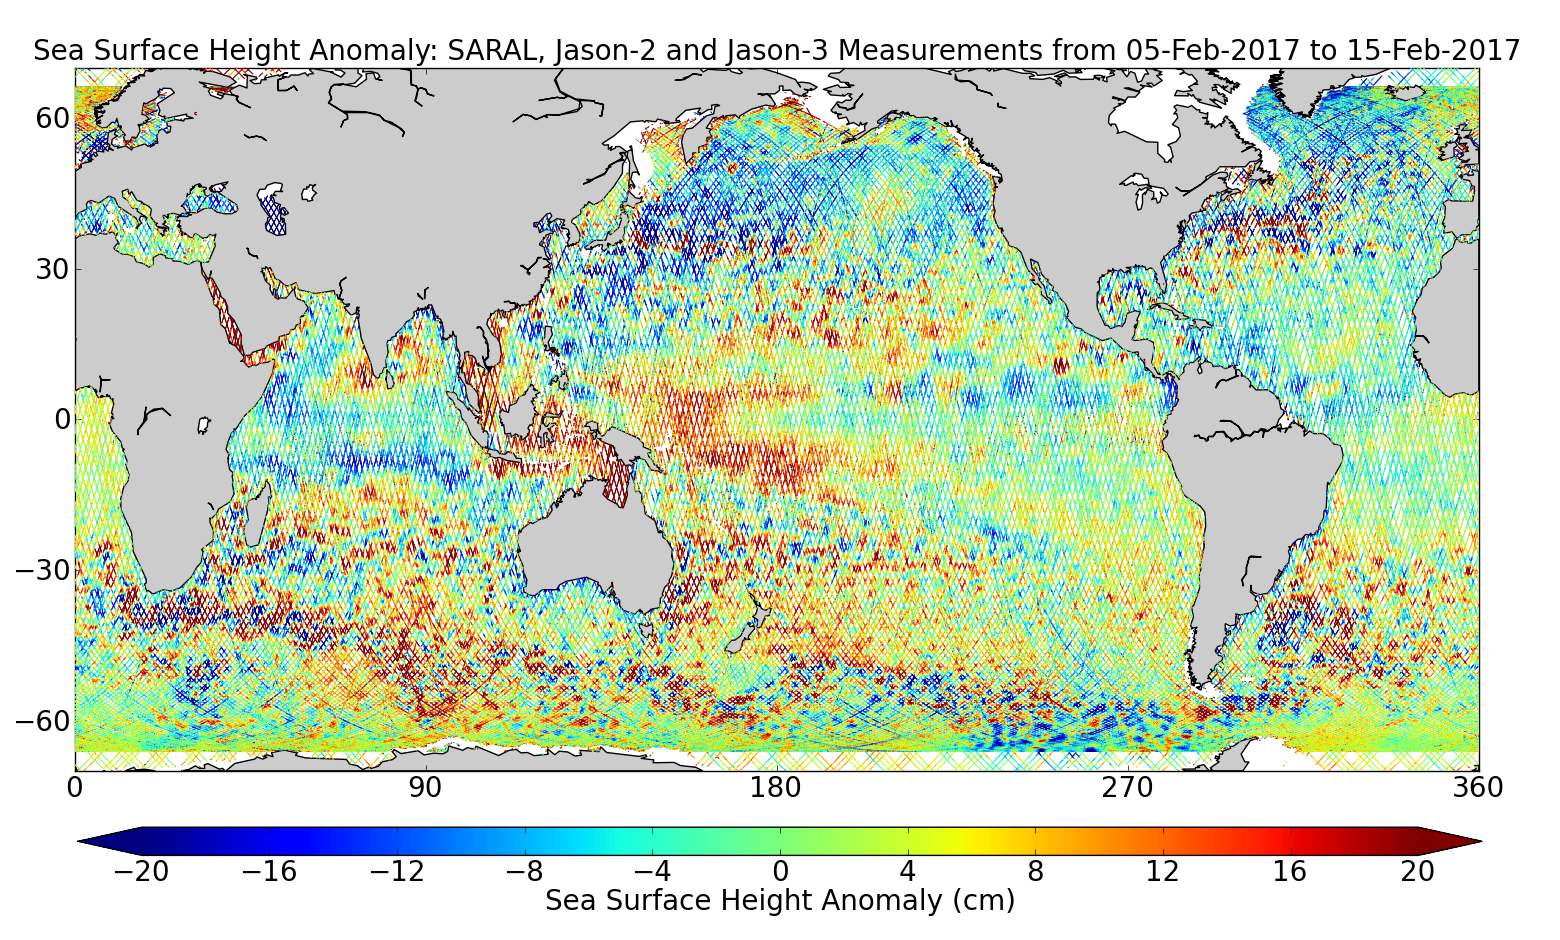 Sea Surface Height Anomaly: SARAL, Jason-2 and Jason-3 Measurements from 05-Feb-2017 to 15-Feb-2017